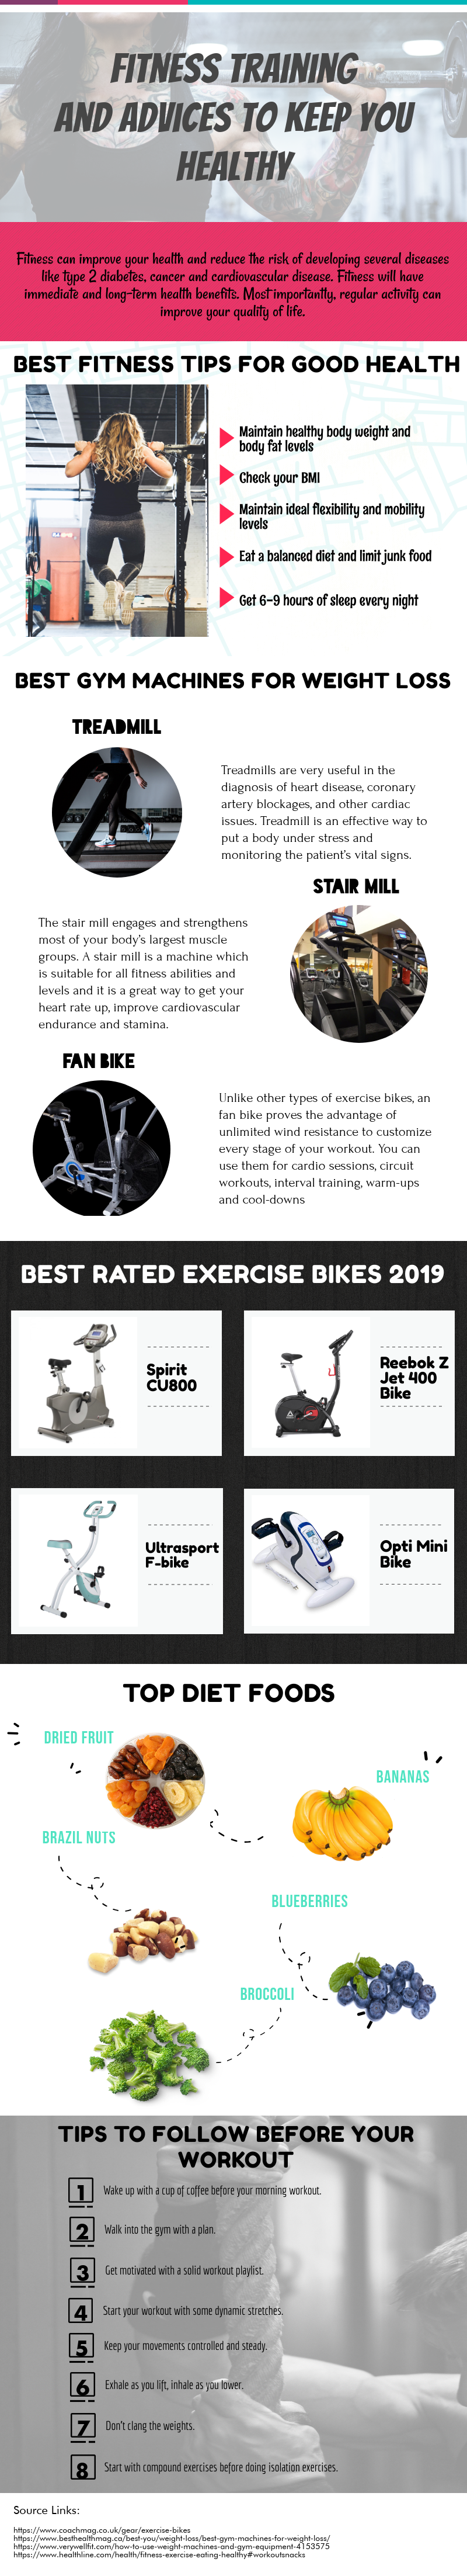 5 Benefits Of Exercise Bike For Health